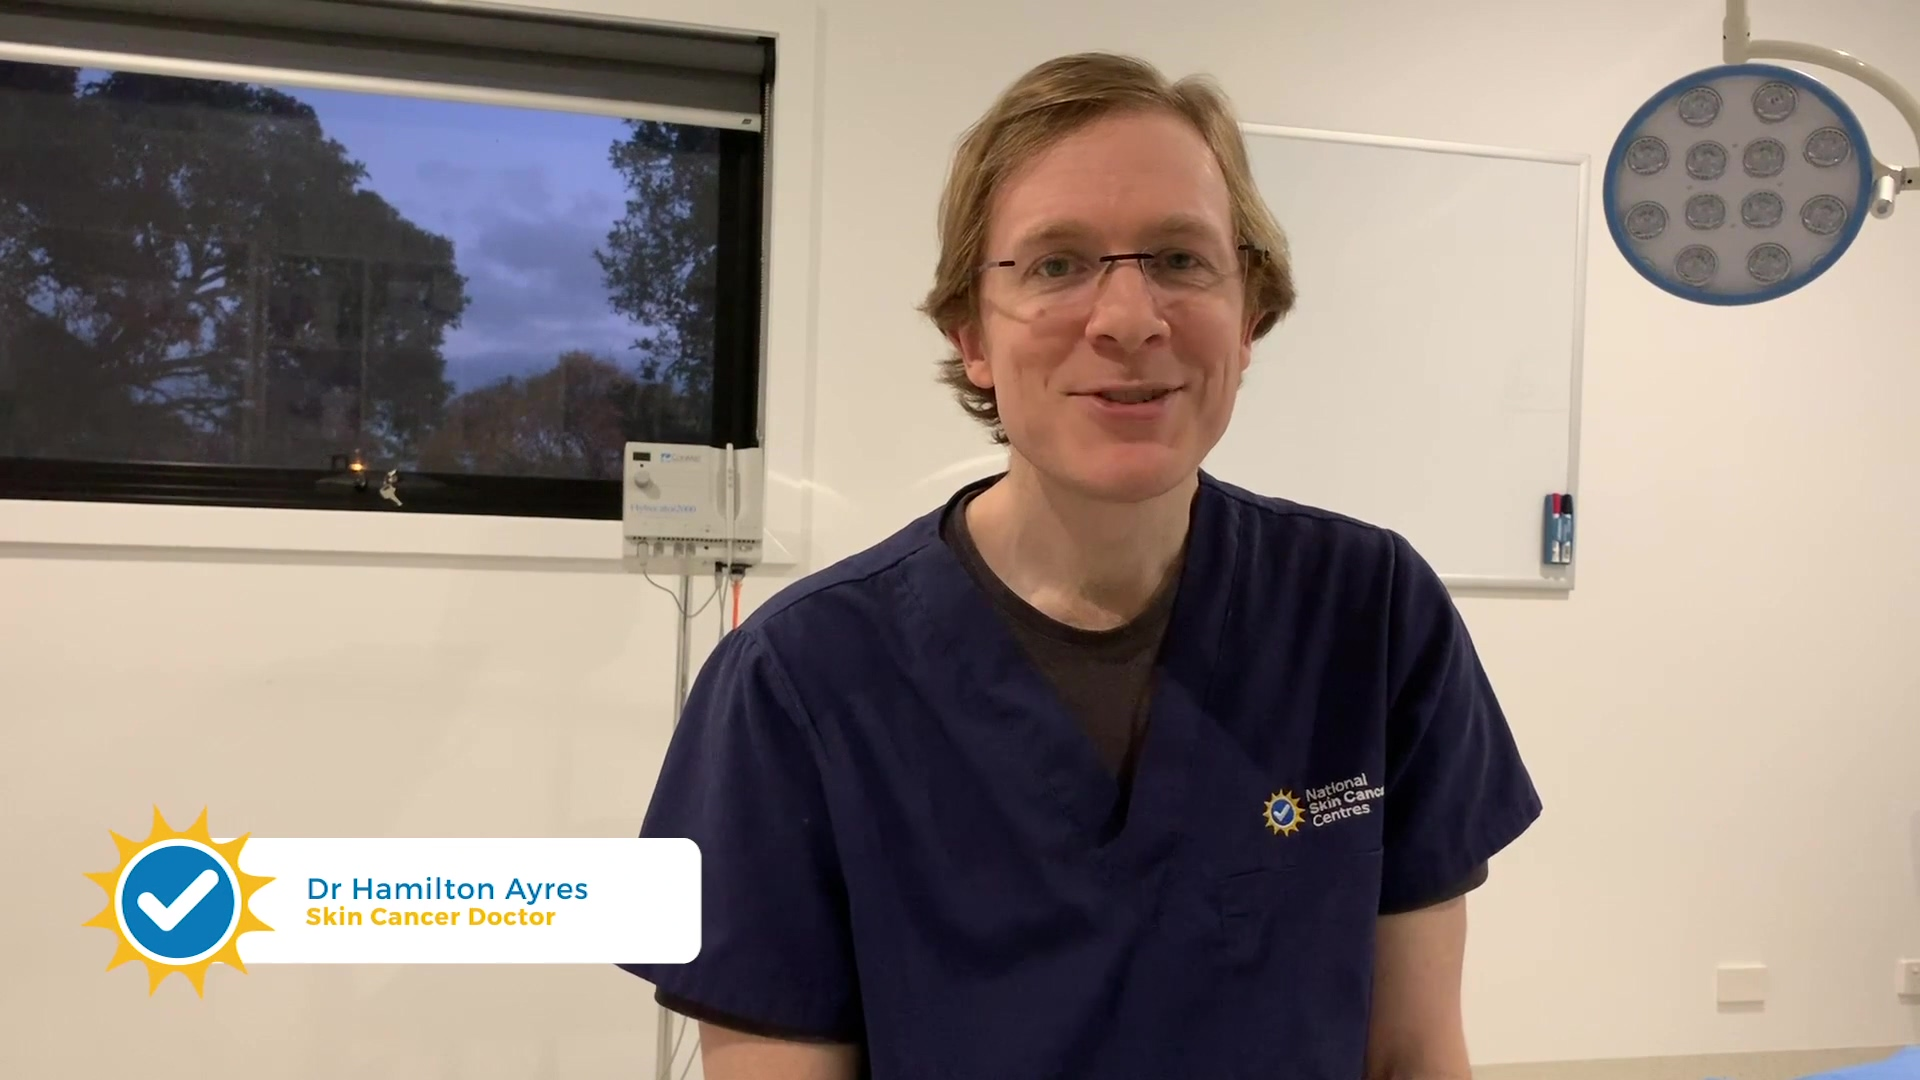 NSCC Dr Ayres on whats involved with a skin check